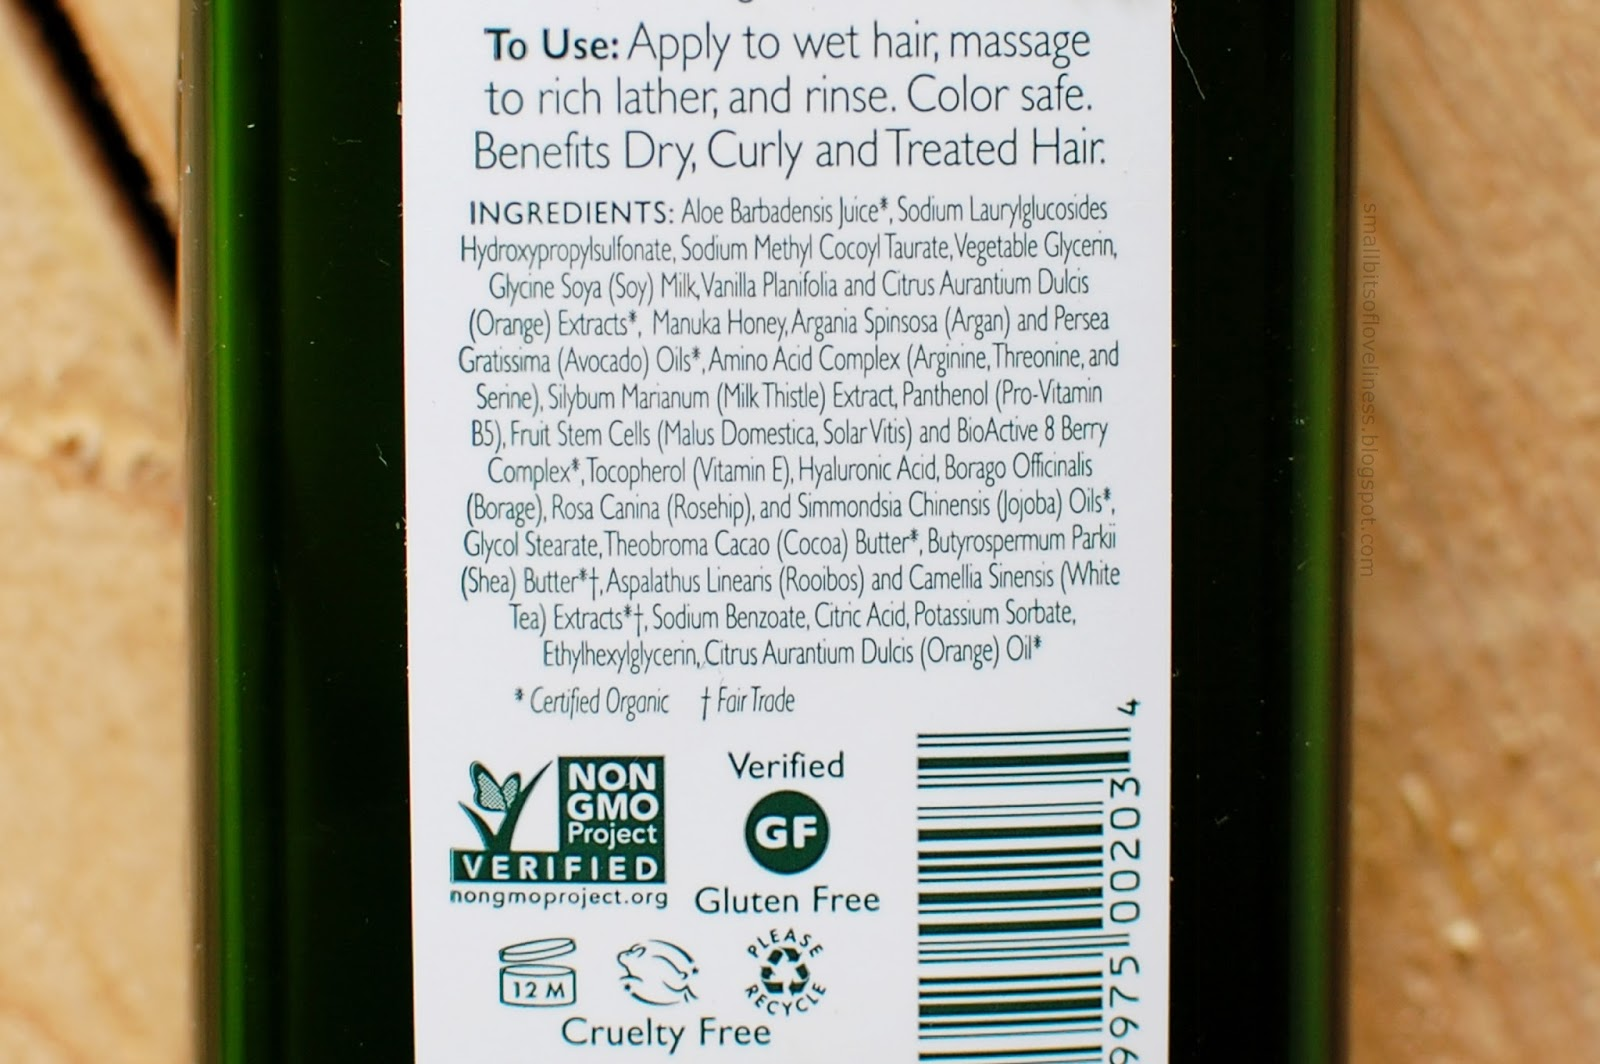 Andalou Naturals Argan & Sweet Orange Shampoo ingredients